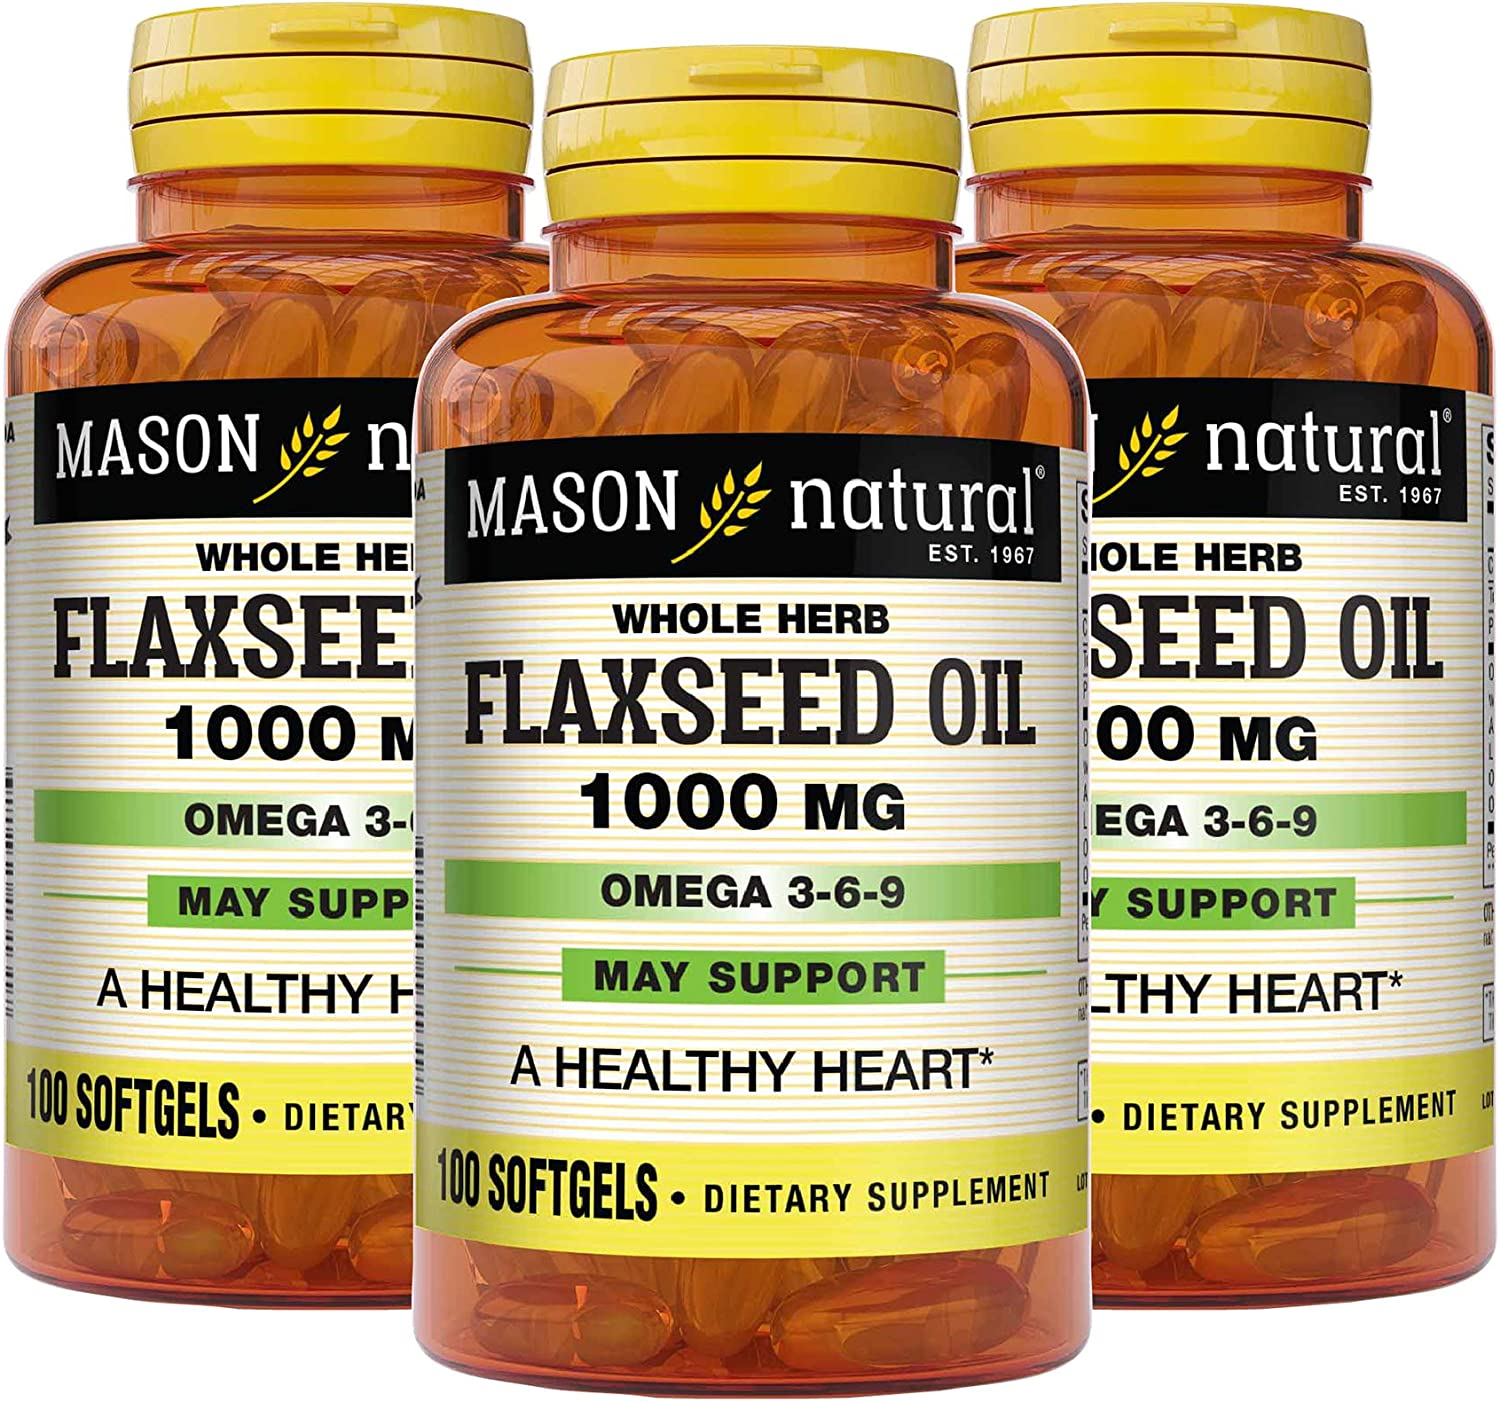 Mason Natural Flax Seed Oil 1000 Omega Soft Mg 3-6-9 Linaza Very popular! Weekly update